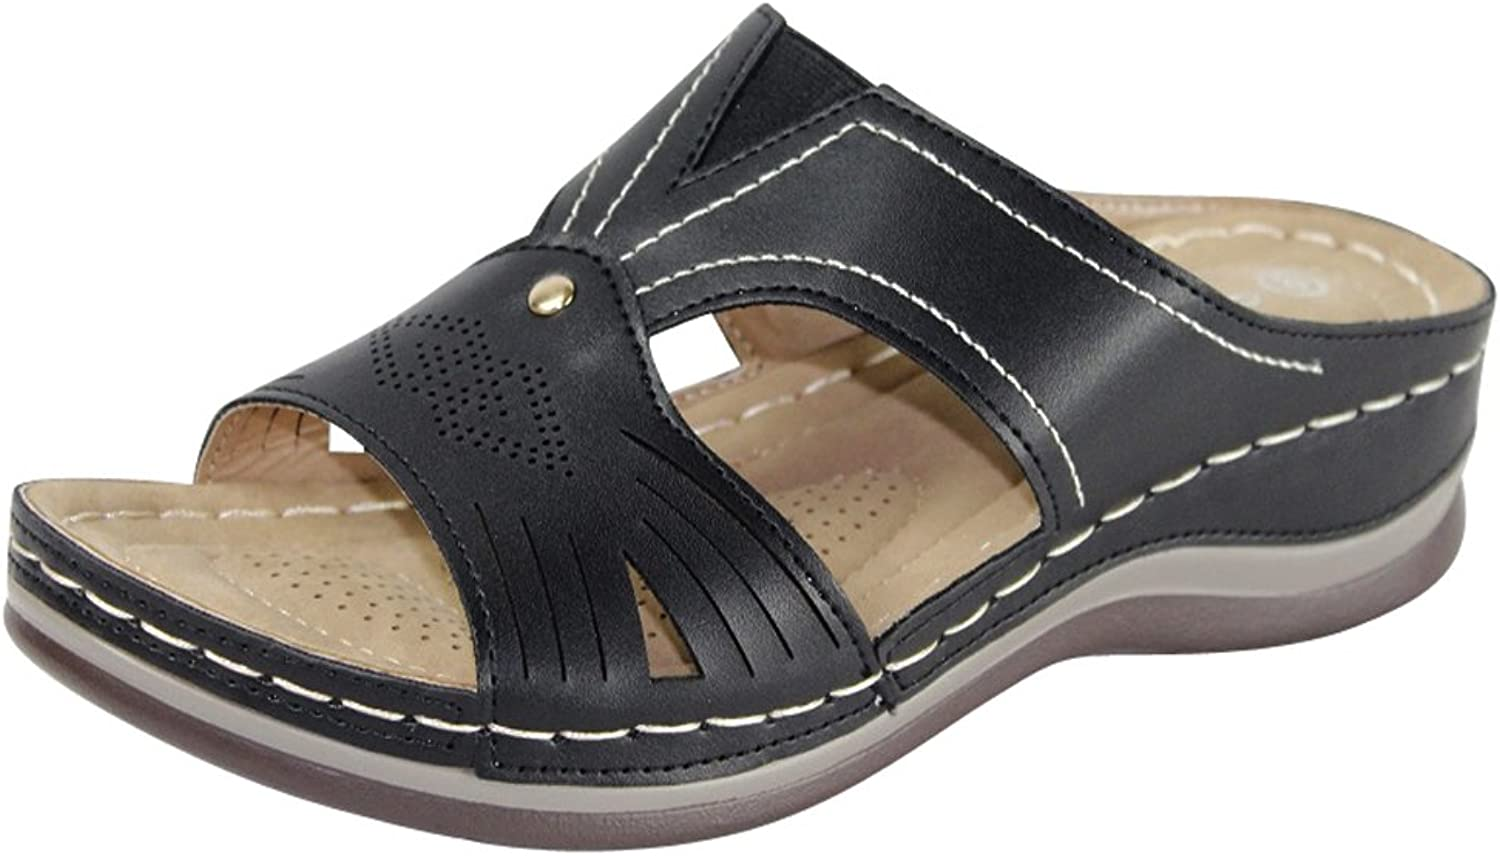 Cambridge Select Women's Comfort Padded Perforated Cutout Slip-On Low Wedge Sandal